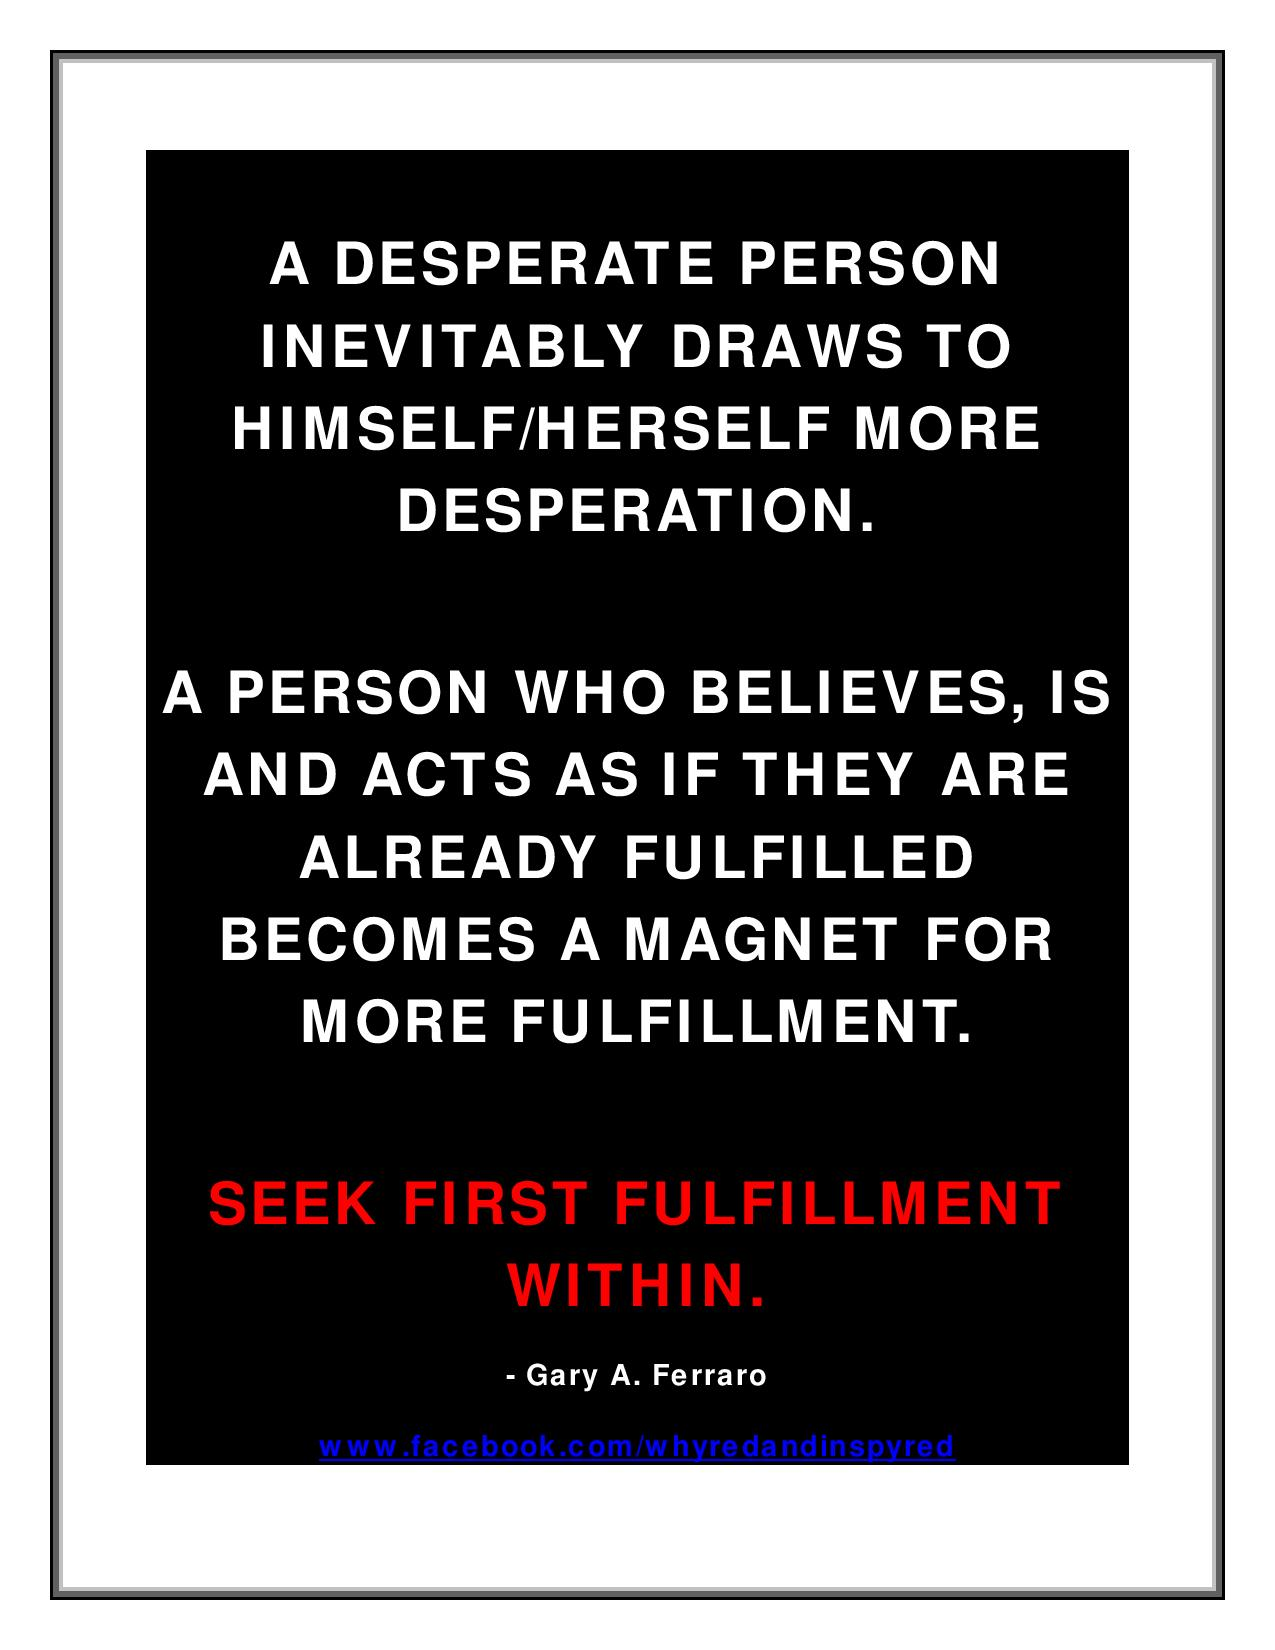 SEEK FIRST FULFILLMENT WITHIN-BL-page-001